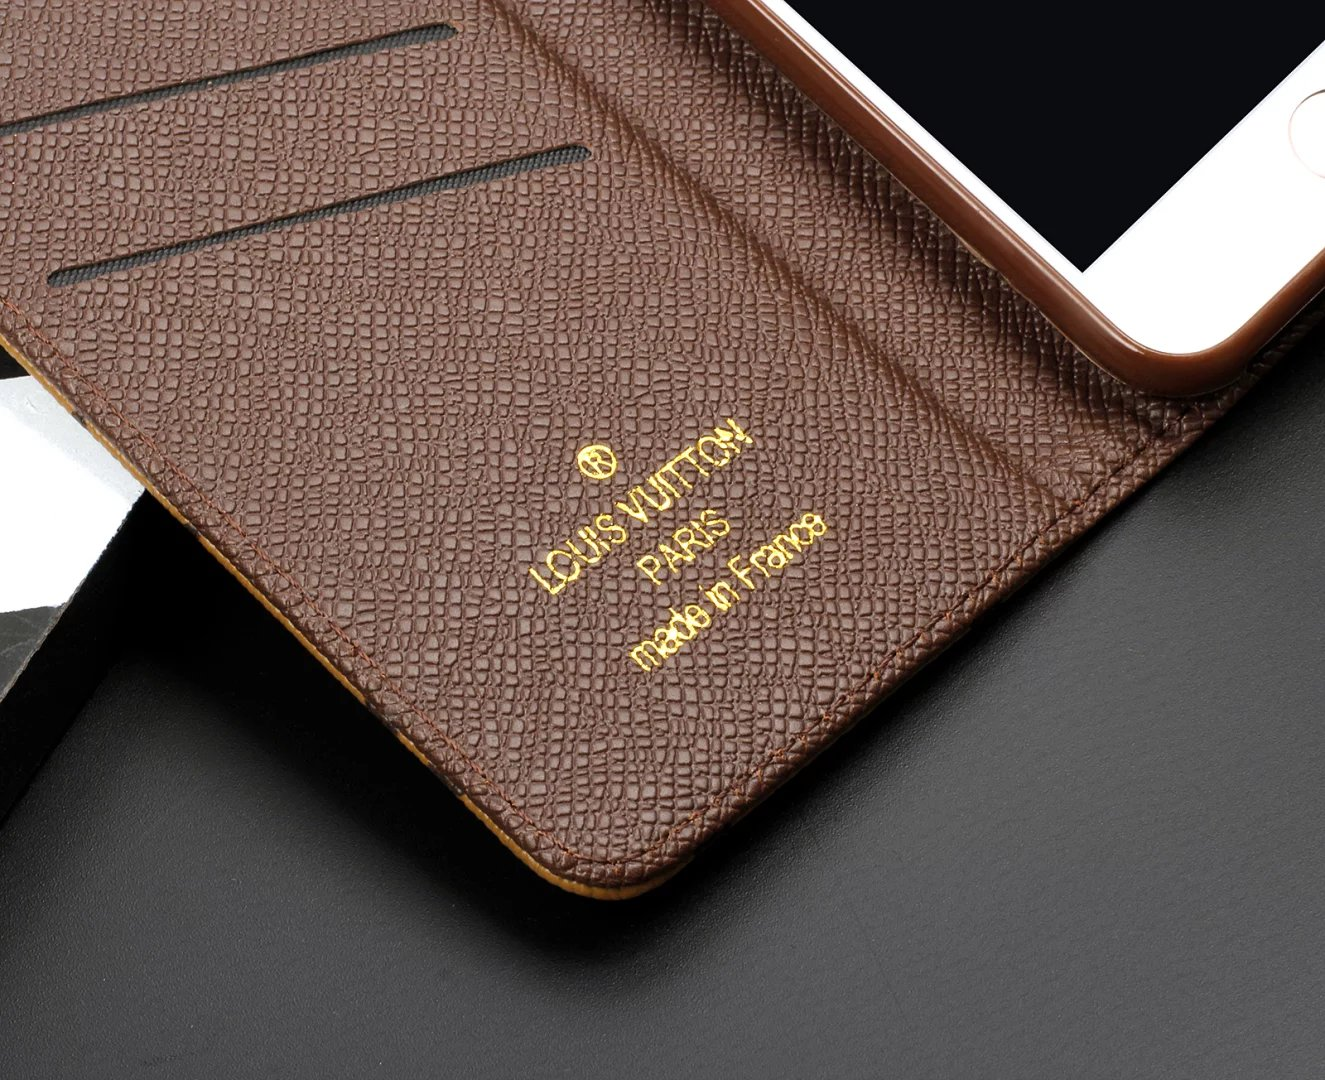 make your own iphone 8 Plus case case iphone 8 Plus Louis Vuitton iphone 8 Plus case hot iphone 8 Plus cases iphone apple case apple iPhone 8 Plus cover case iphone 8 Plus cool covers phone case sites cell phone cases for